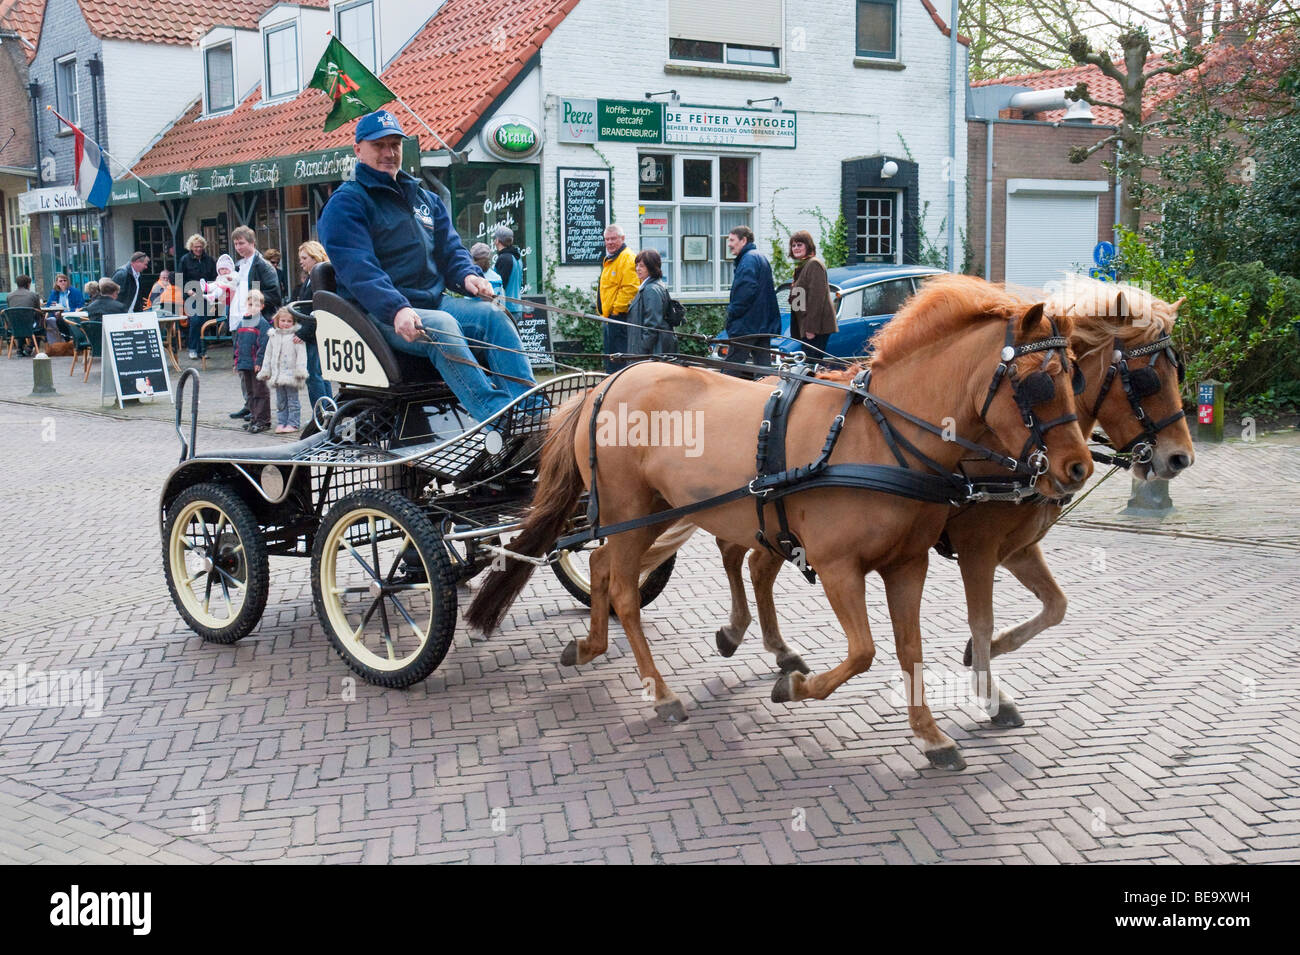 A horse carriage drives through the Dutch North Sea resort town of Burgh-Haamstede. - Stock Image